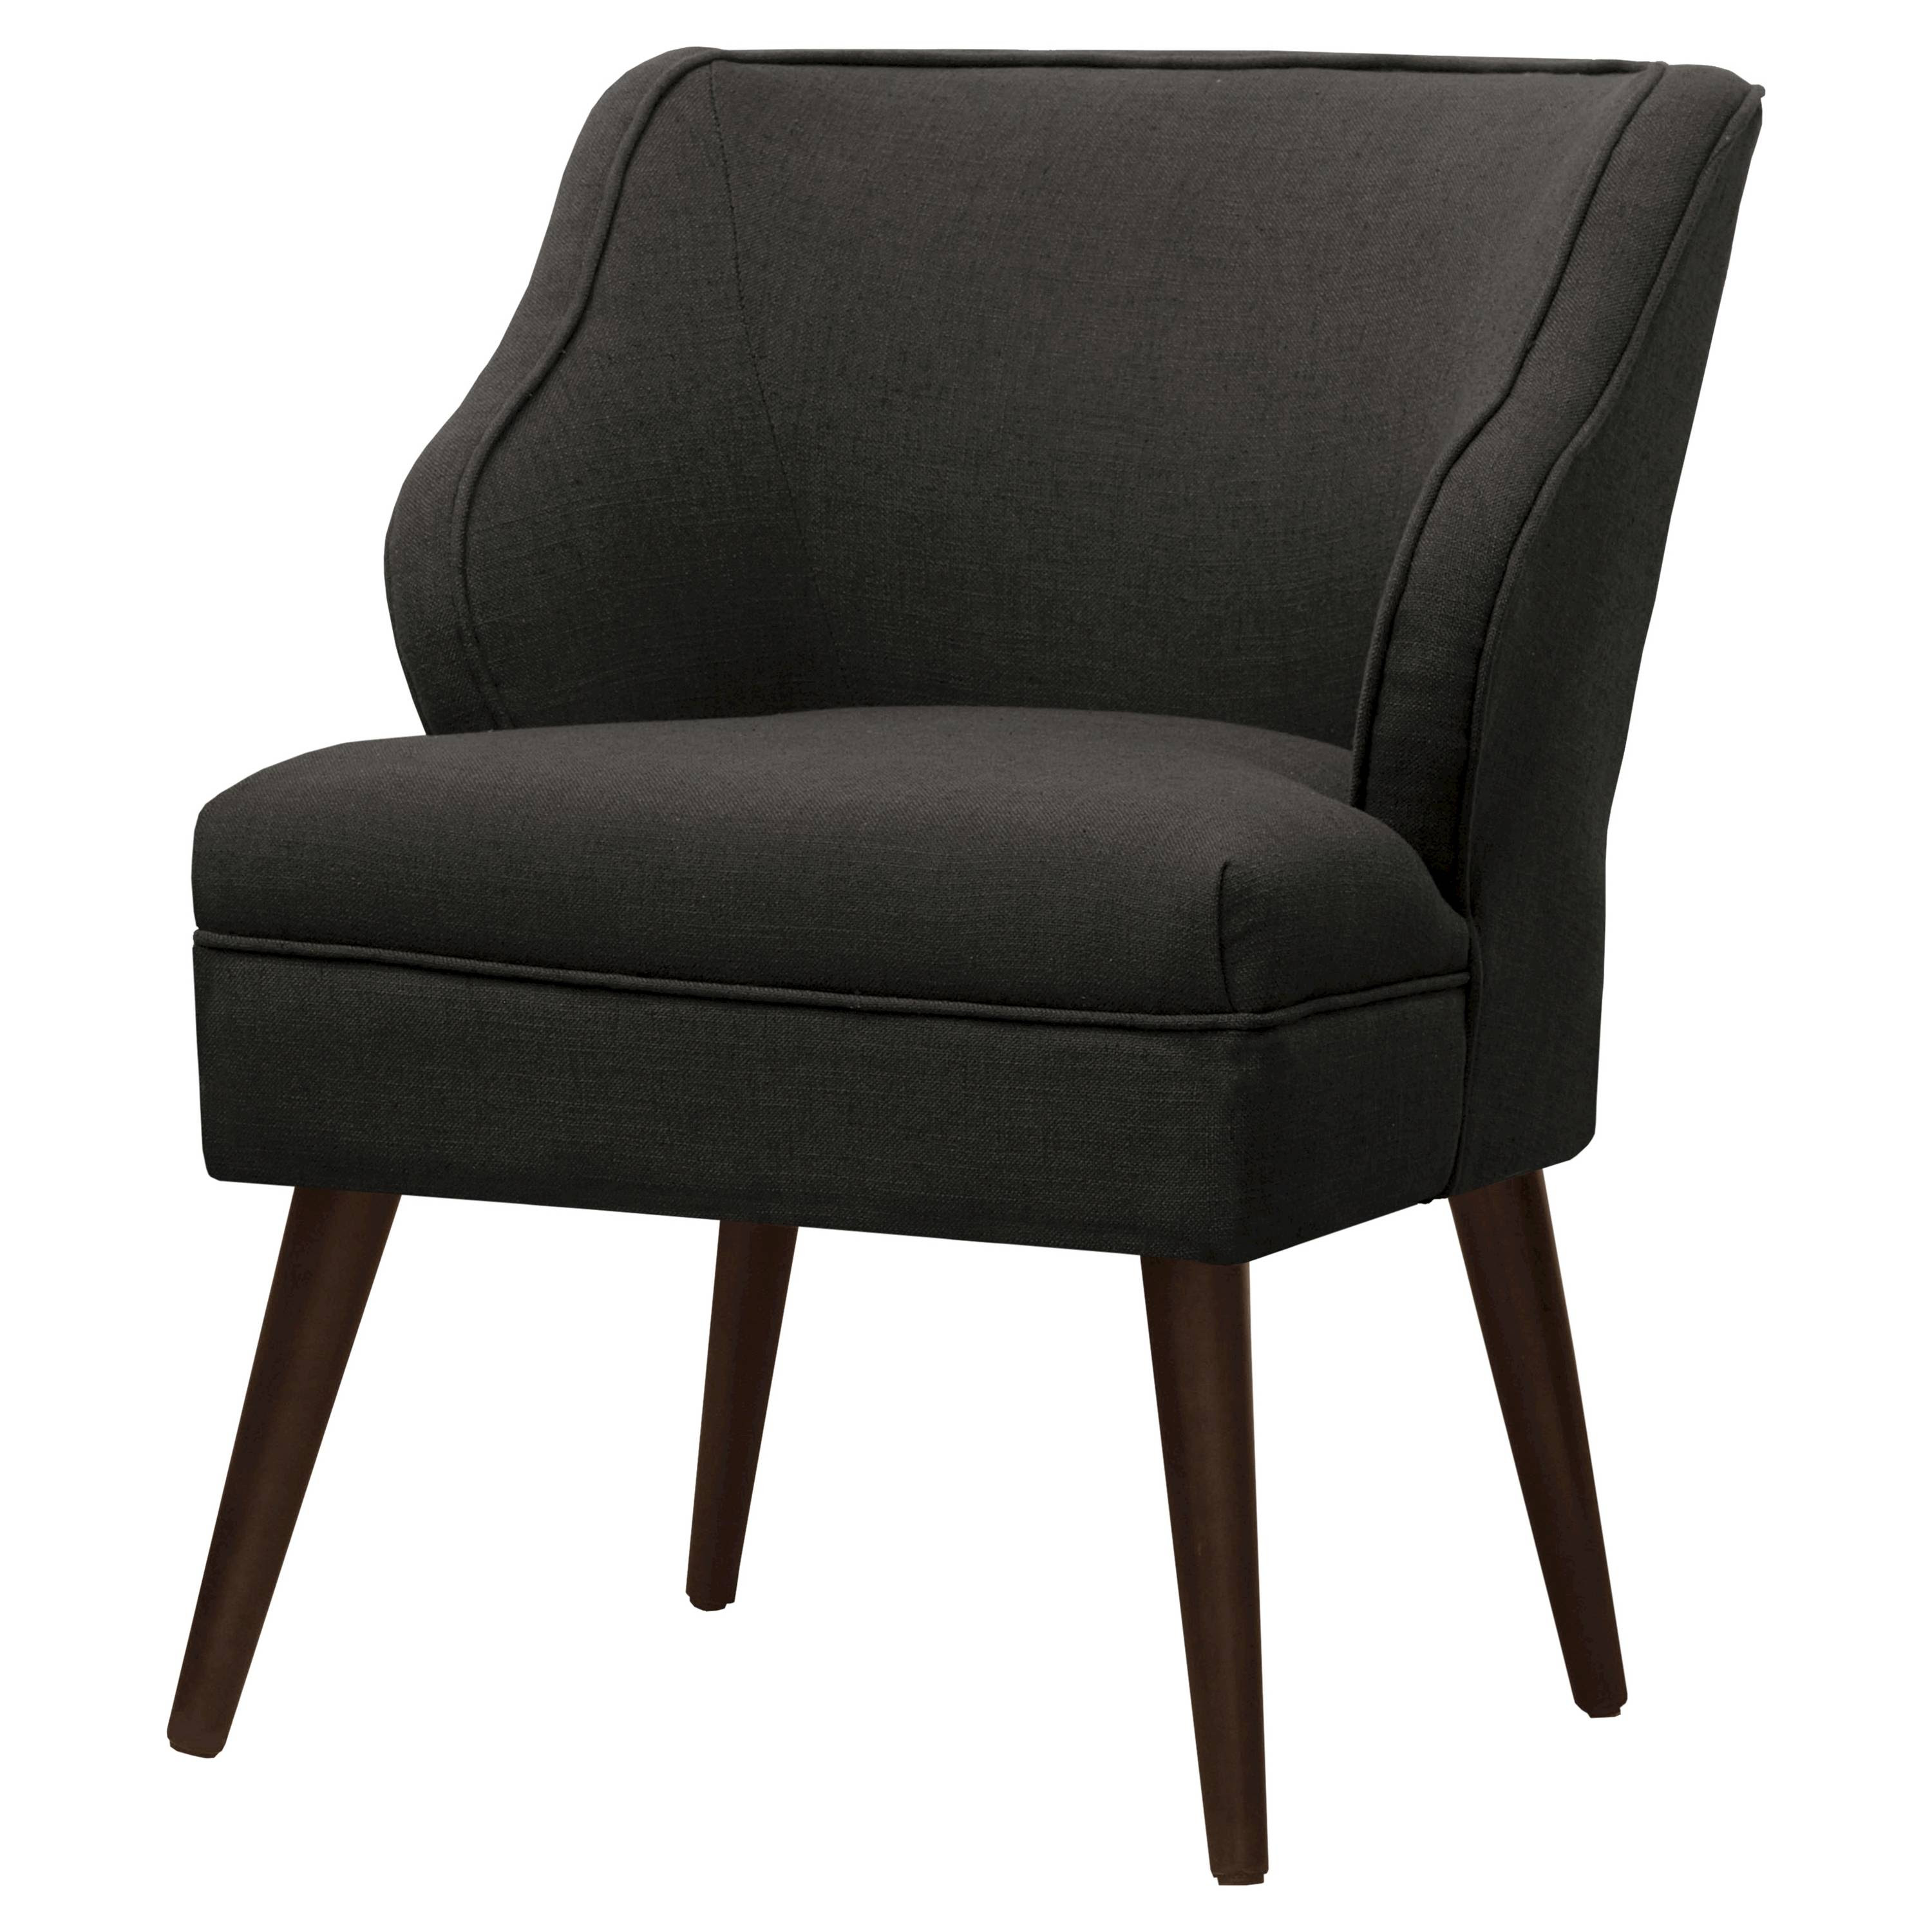 Mid mod chair _Target